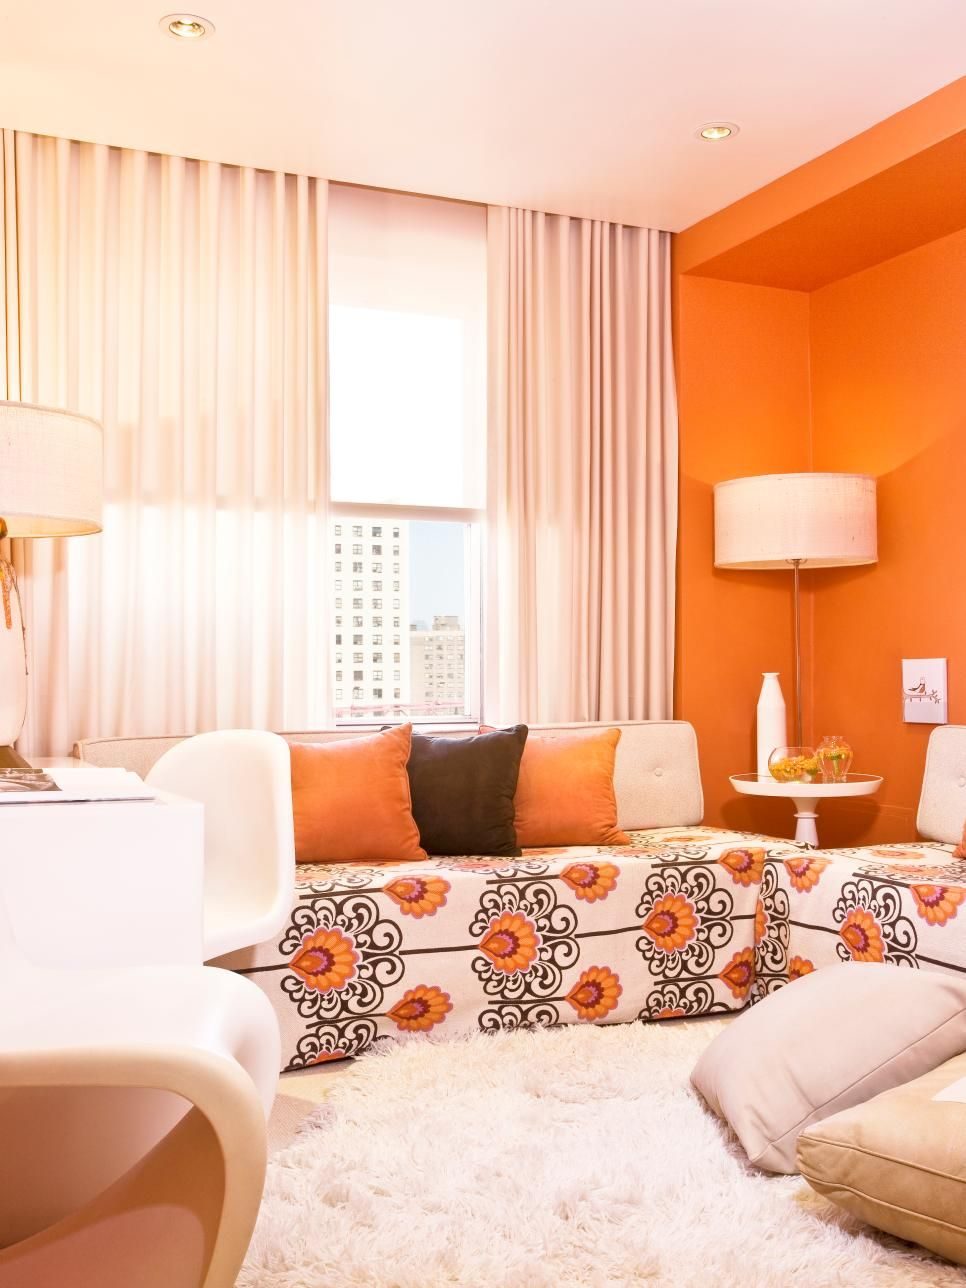 Small Living Room Design Ideas And Color Schemes Small Living Room Decor Small Living Room Design Living Room Design Small Spaces